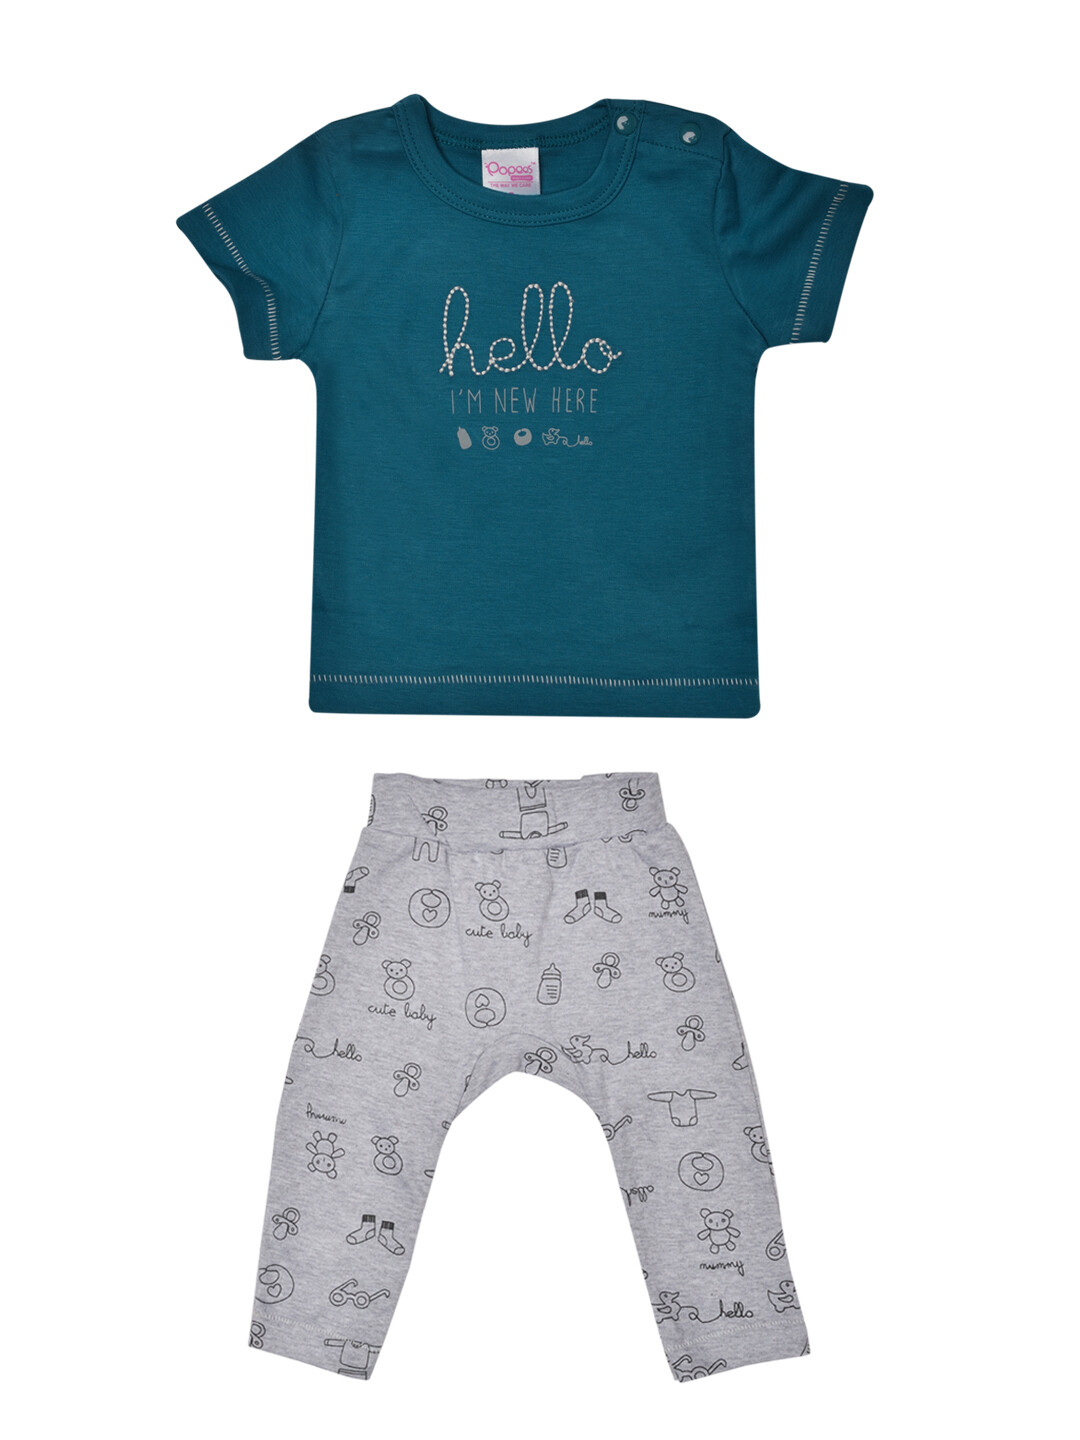 Qubee Celestial Blue Half Sleeves Round Neck T-Shirt with Printed Lounge Pant